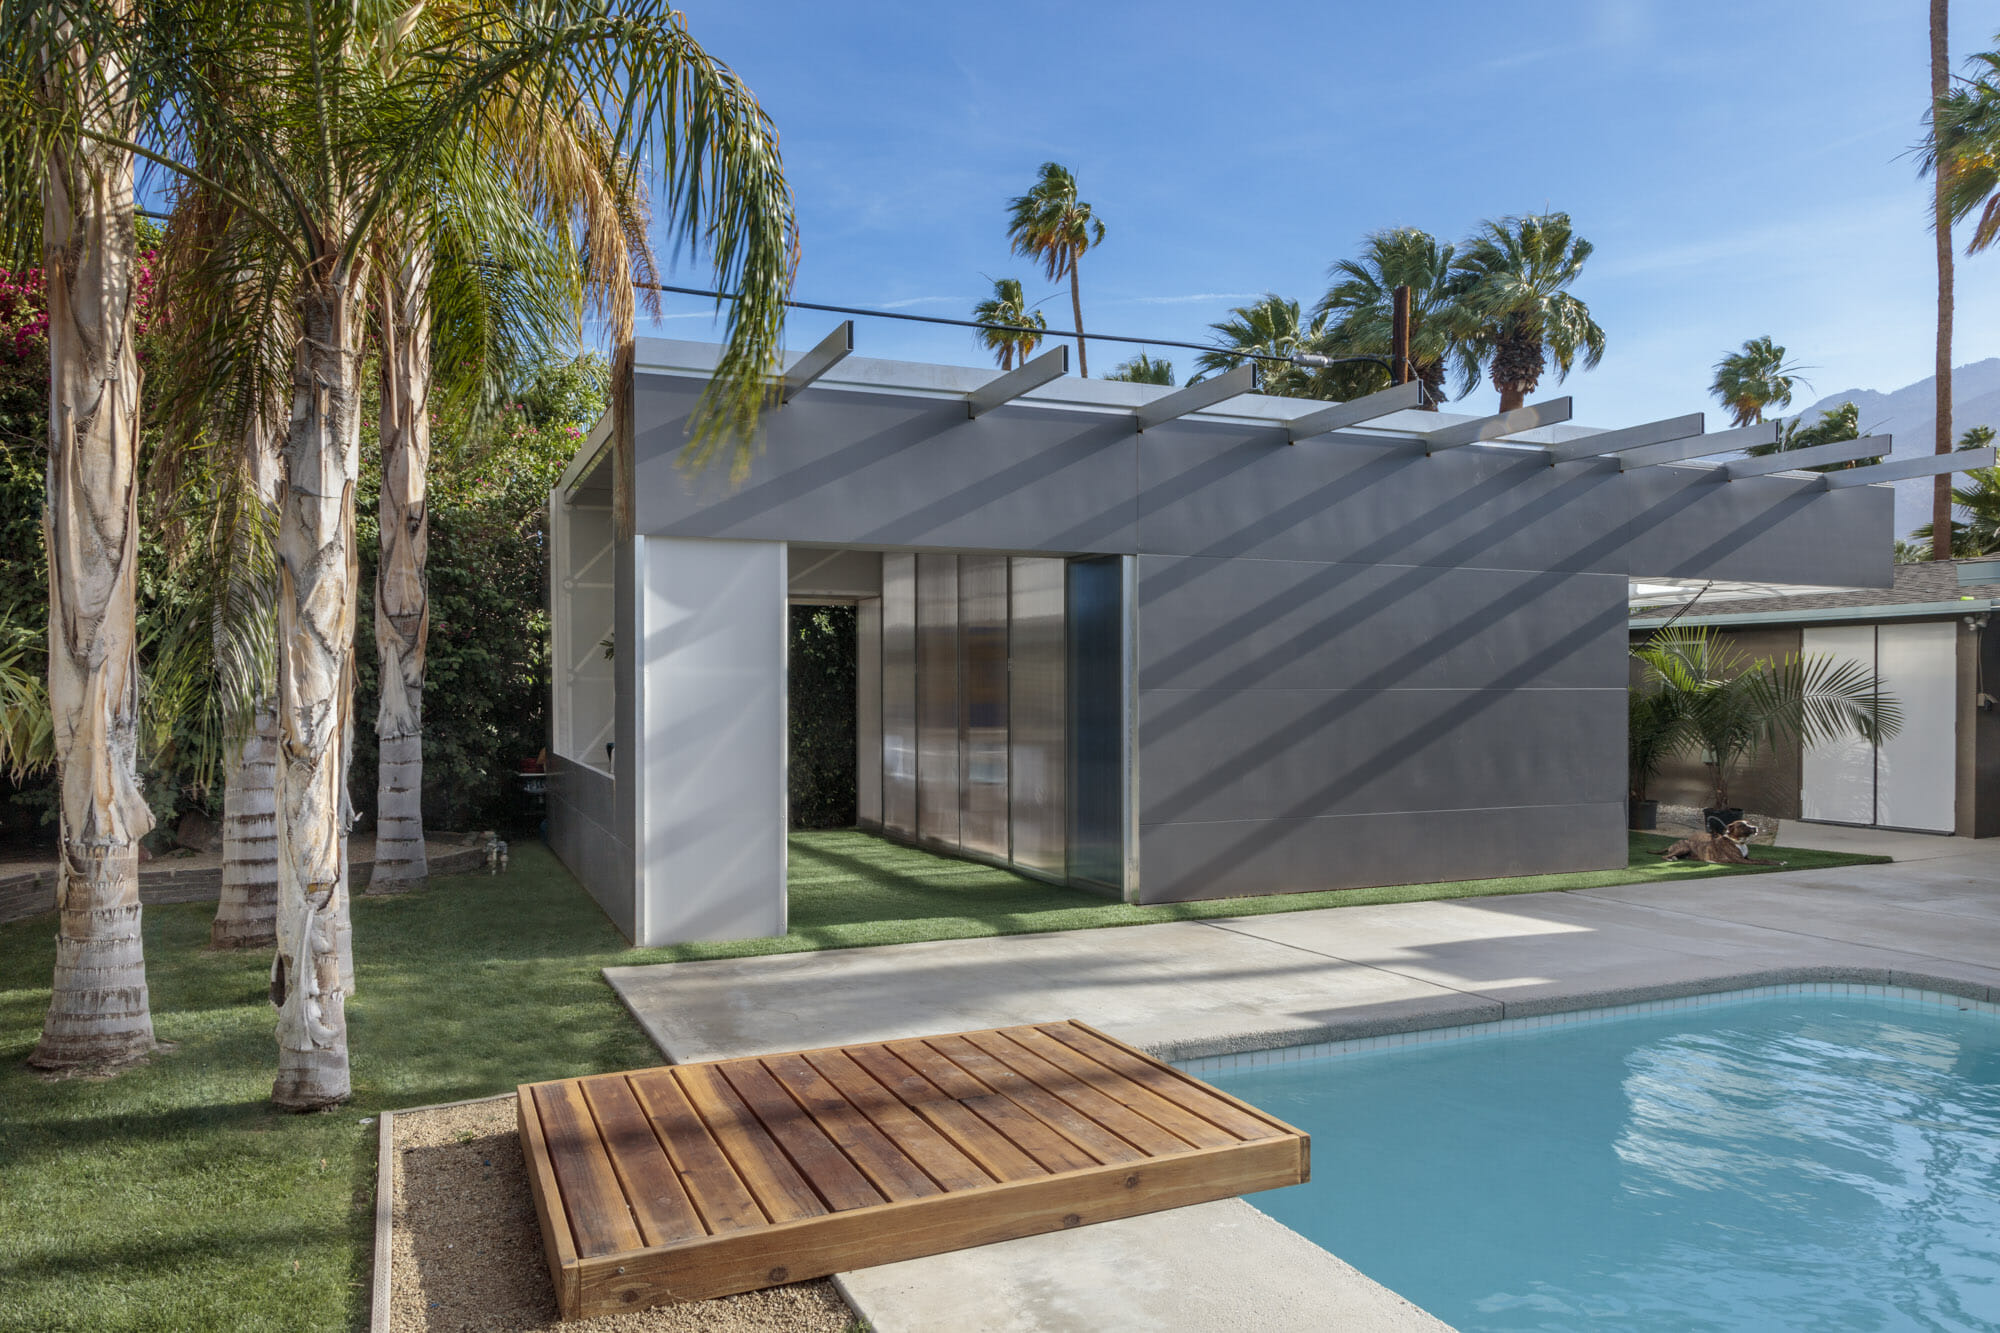 An Oasys ADU by Stereobot, located in Palm Springs. A similar Oasys ADU will debut at the 2019 Los Angeles Design Festival, June 20-23.